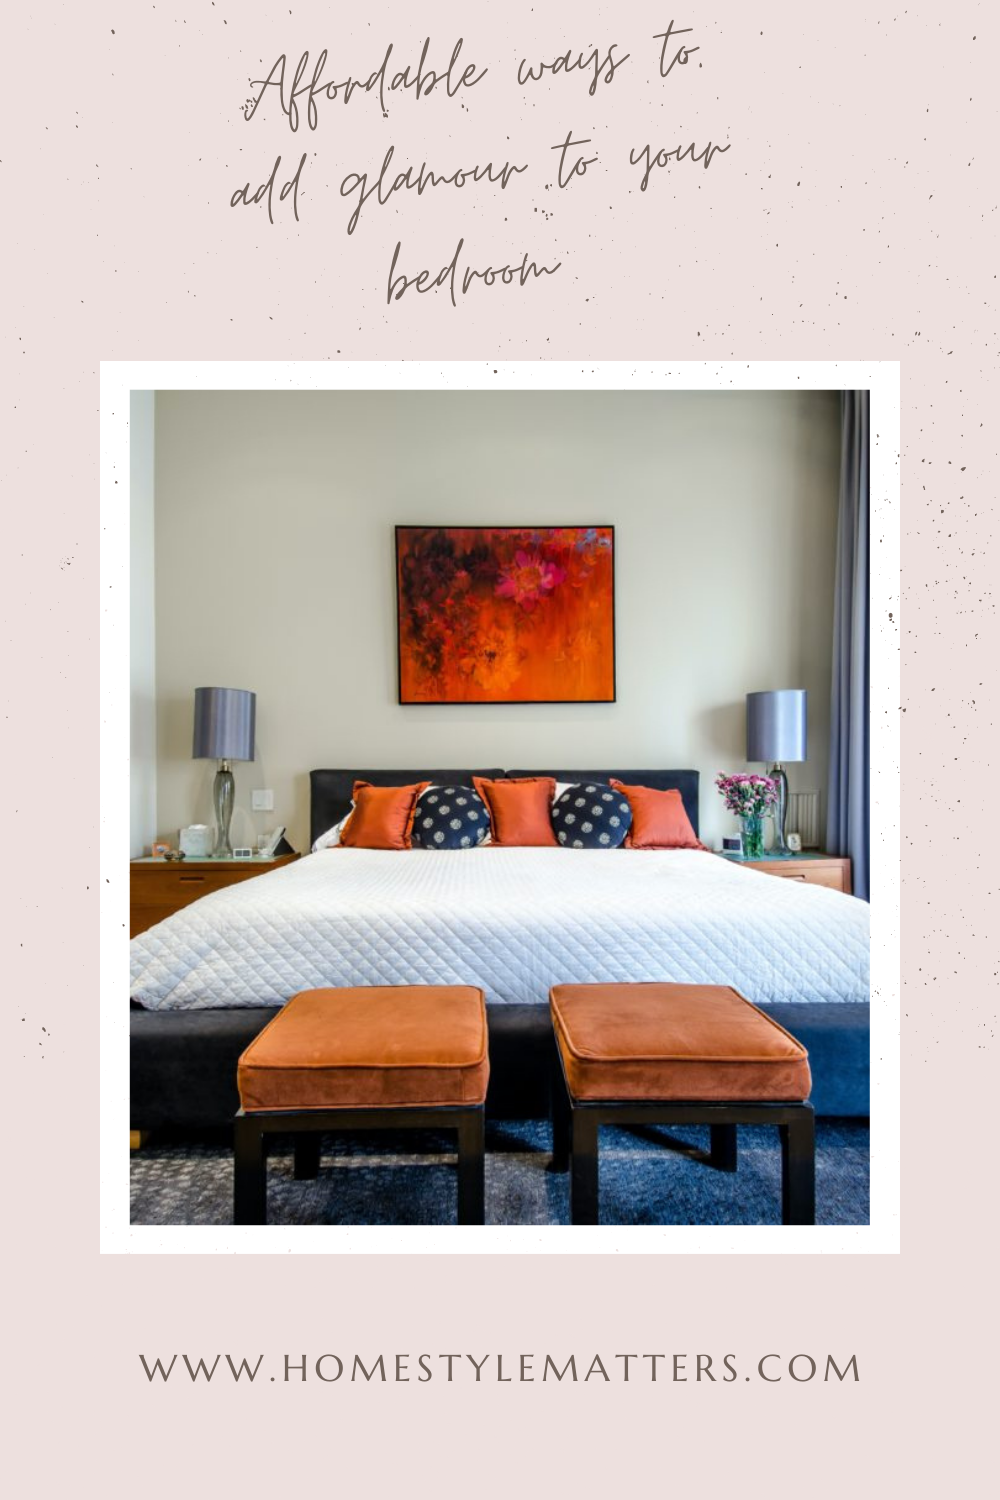 Affordable ways to add glamour to your bedroom 6